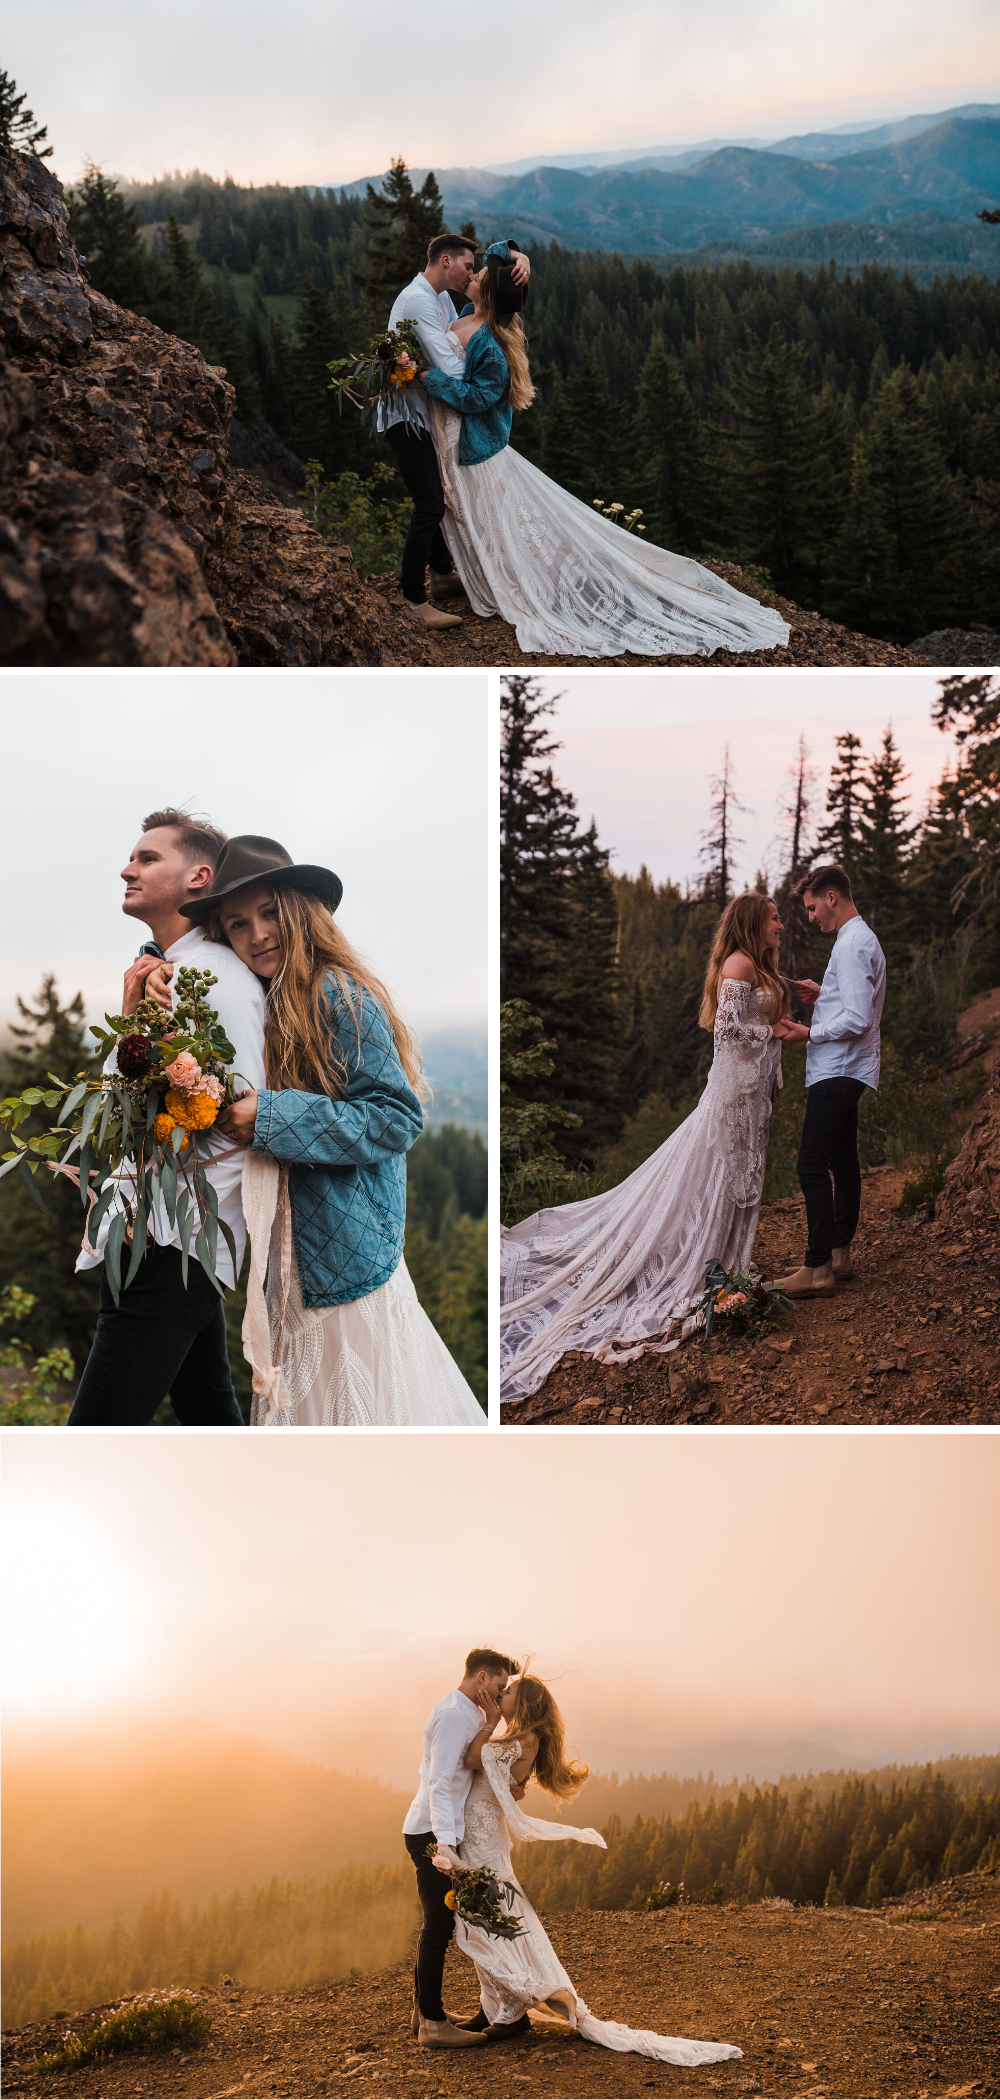 Best National Park Wedding Venues In The Us In 2020 National Park Wedding Park Weddings Wedding Venues